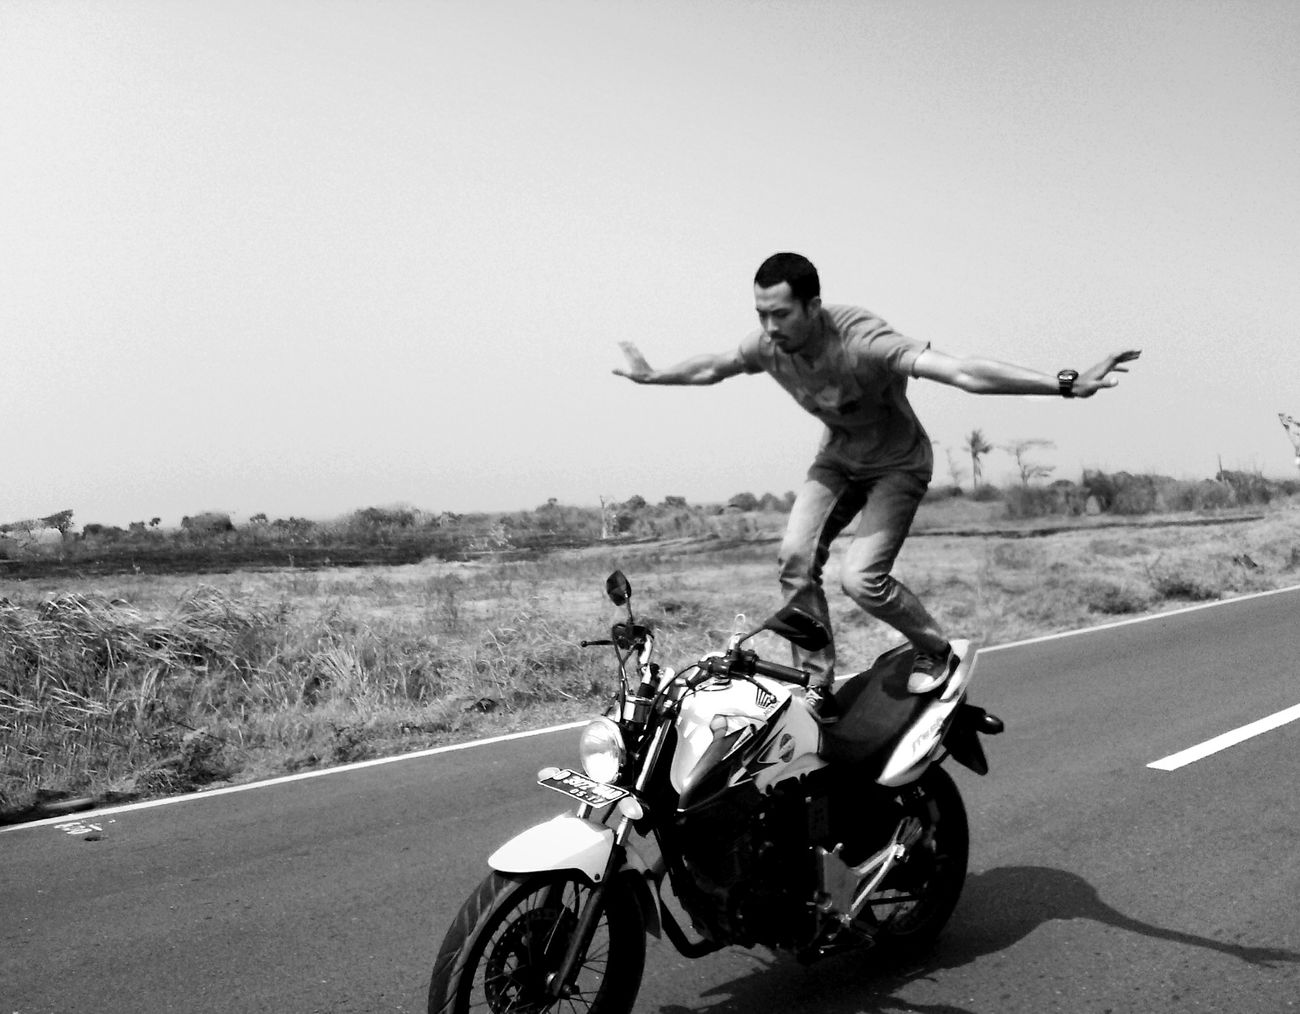 Fly Flying hahaaa Biker Motorcyle Blackandwhite Black And White Blackandwhite Photography Safety 😉😁 Nature That's Me